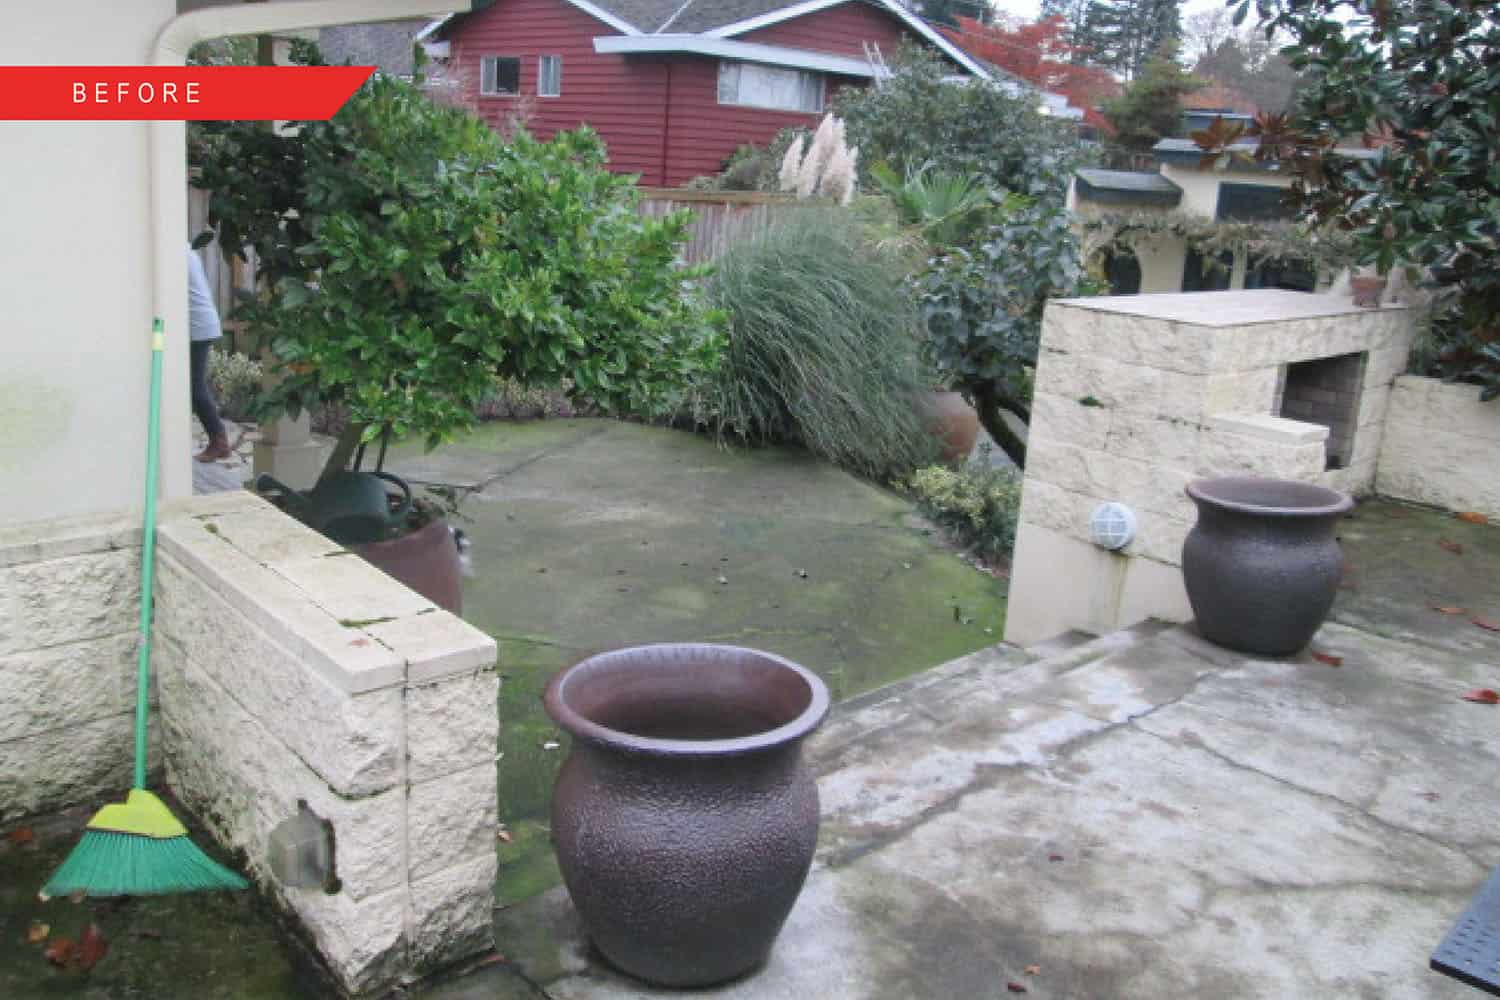 ranch-house-midcentury-landscape-before-remodel